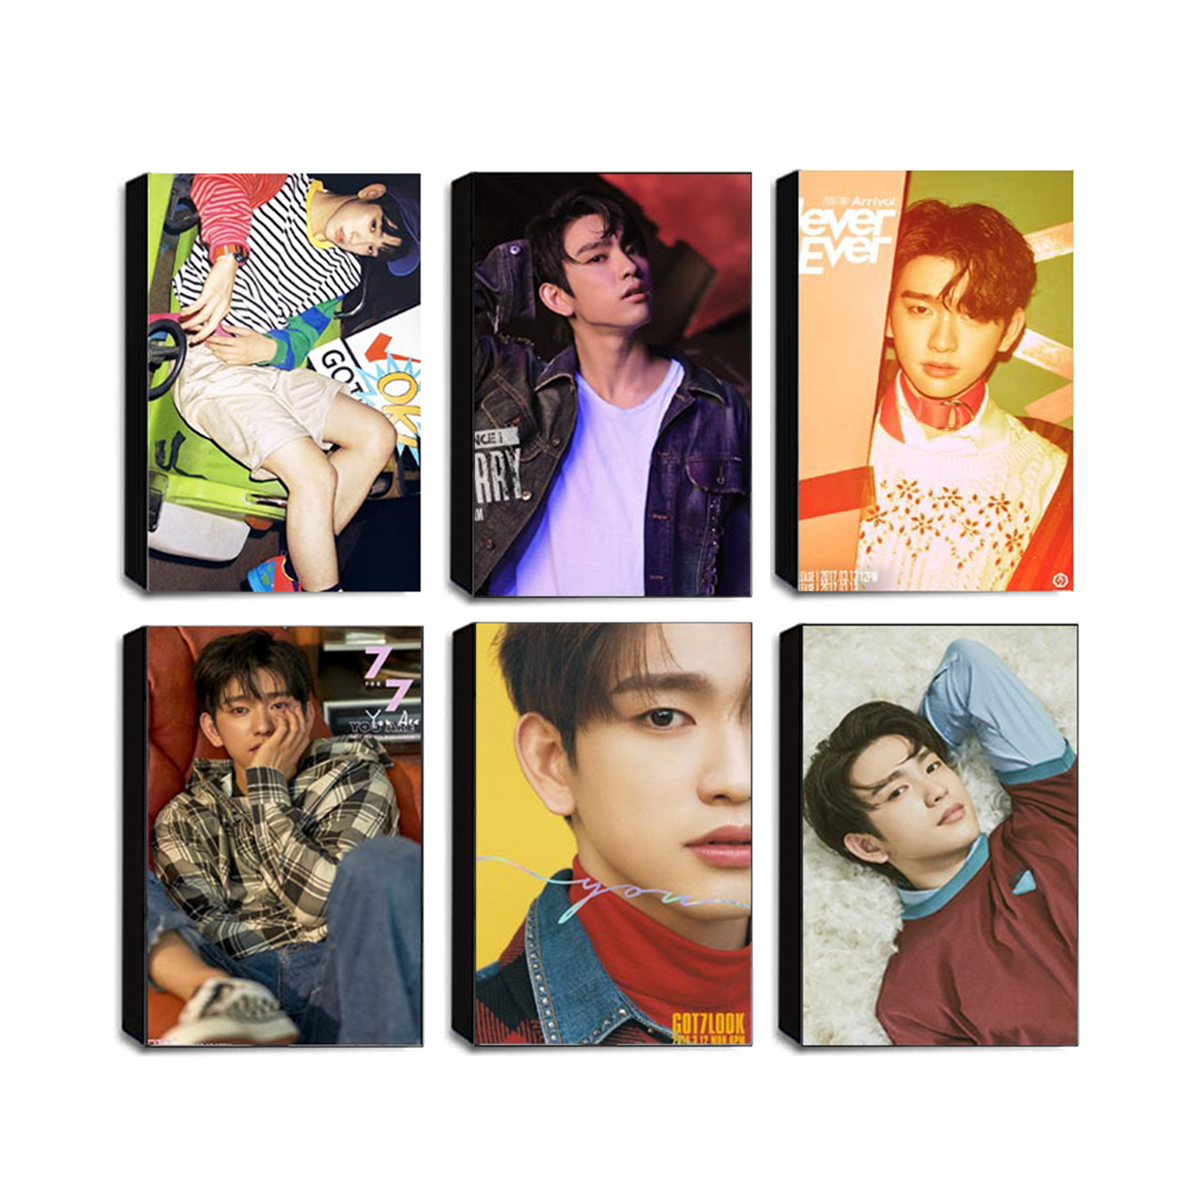 GOT7 JR COVER